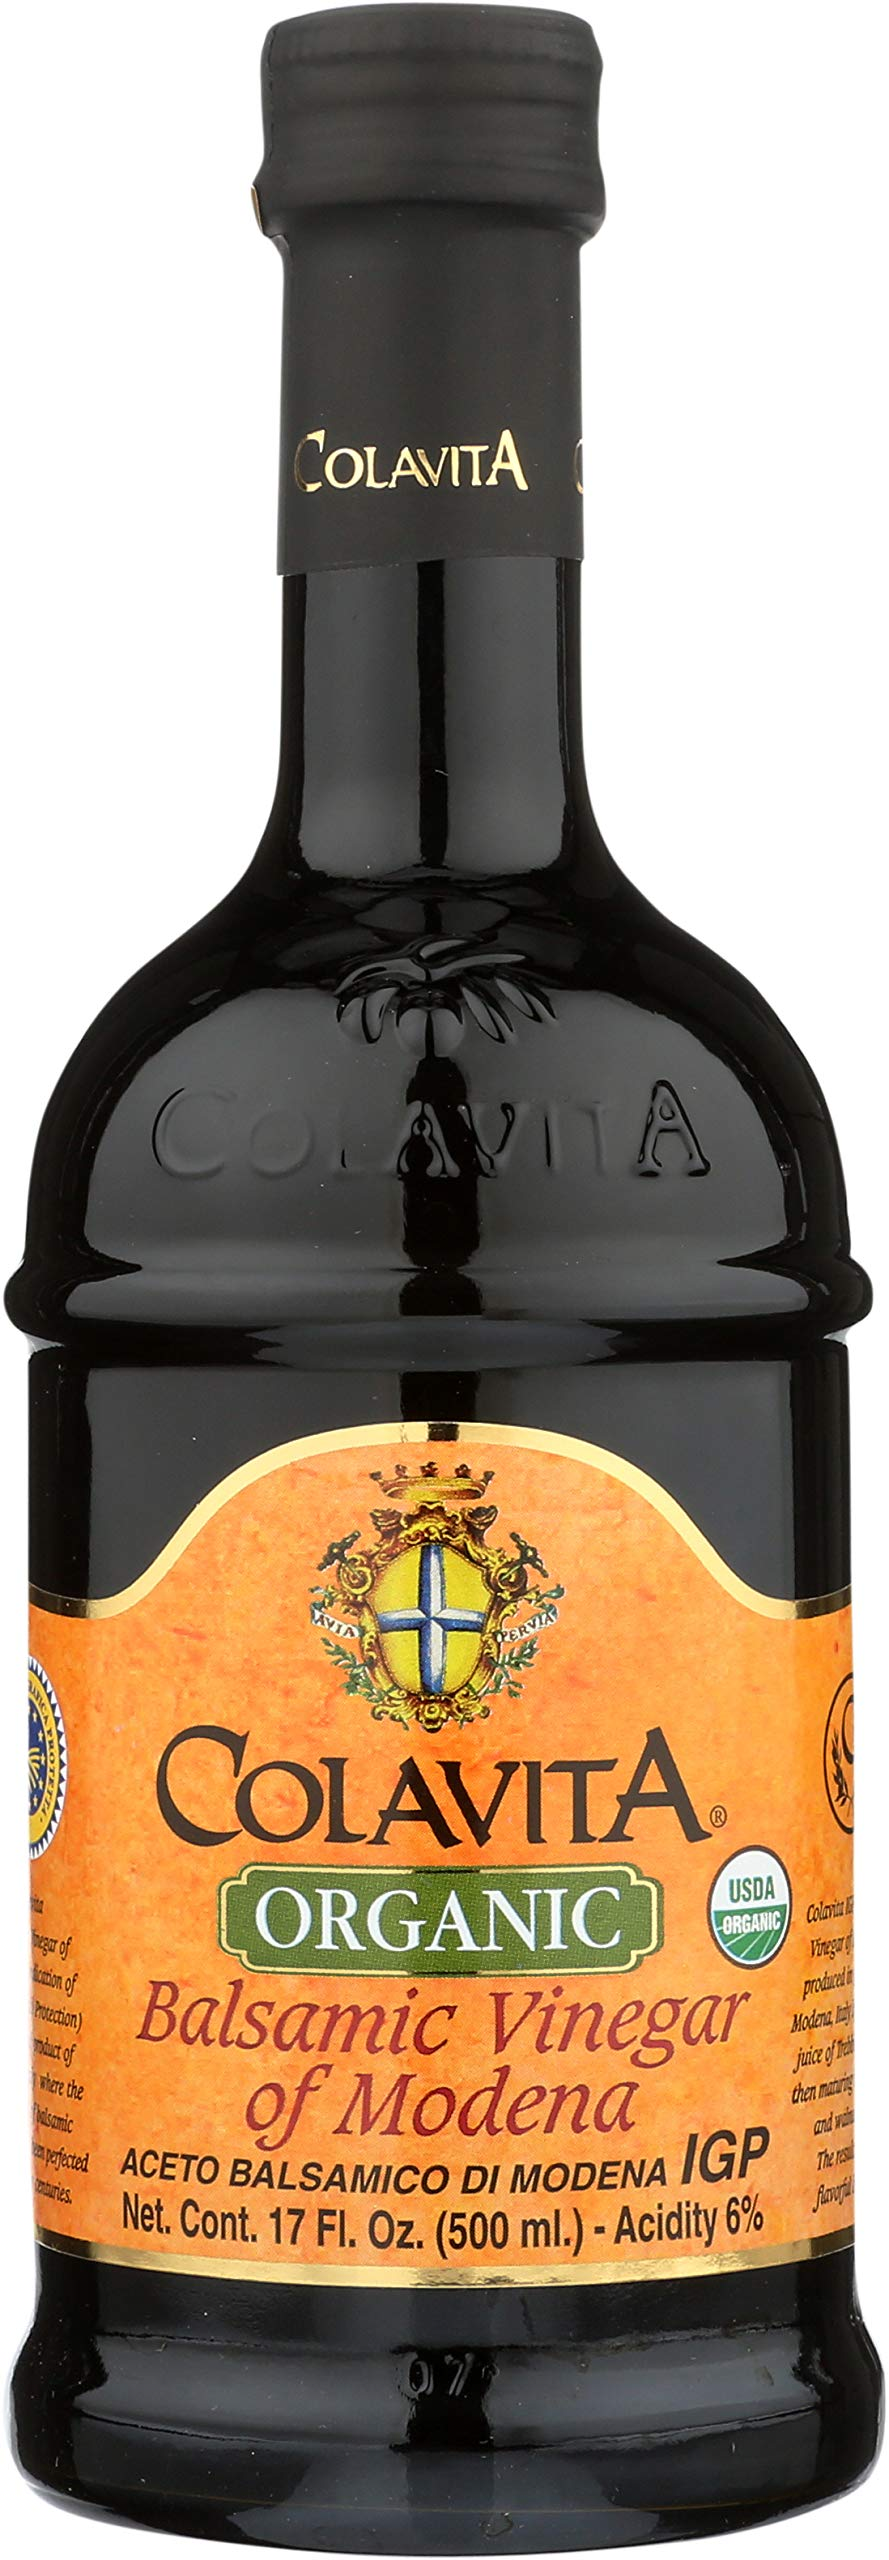 Colavita Vinegar, 5-Ounce Bottles (Pack of 16) 1 Special 5oz bottle Colavita Balsamic Vinegar. Enhance your dishes with the fruity tones of Colavita Balsamic Vinegar. In addition to salad dressings try adding Balsamic Vinegar to slow-cooked foods like soup or beans or use as a marinade for meat.